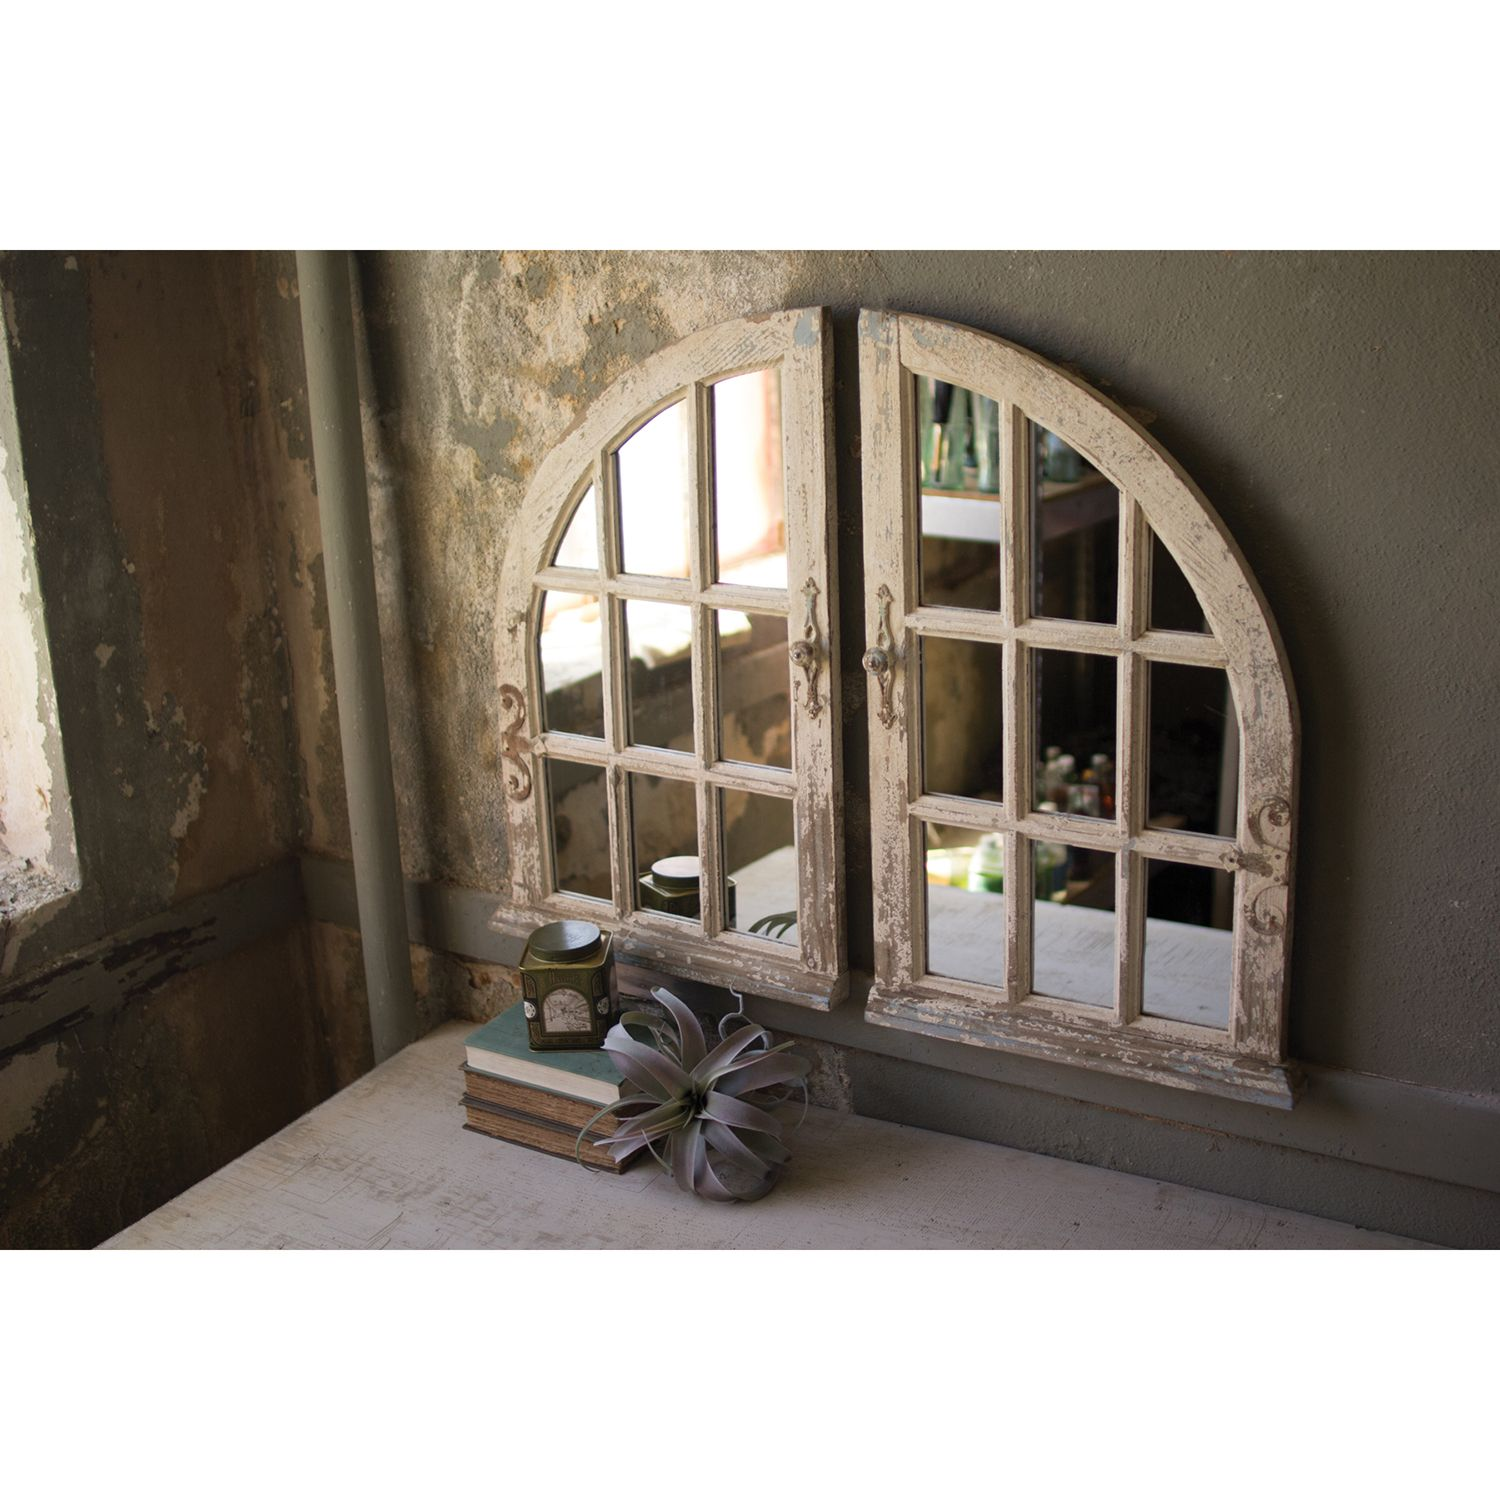 Kalalou Distressed White Arched Window Mirror Set Of Two Ccg1434 Bellacor Arched Window Mirror Rustic Wall Mirrors Mirror Wall Living Room